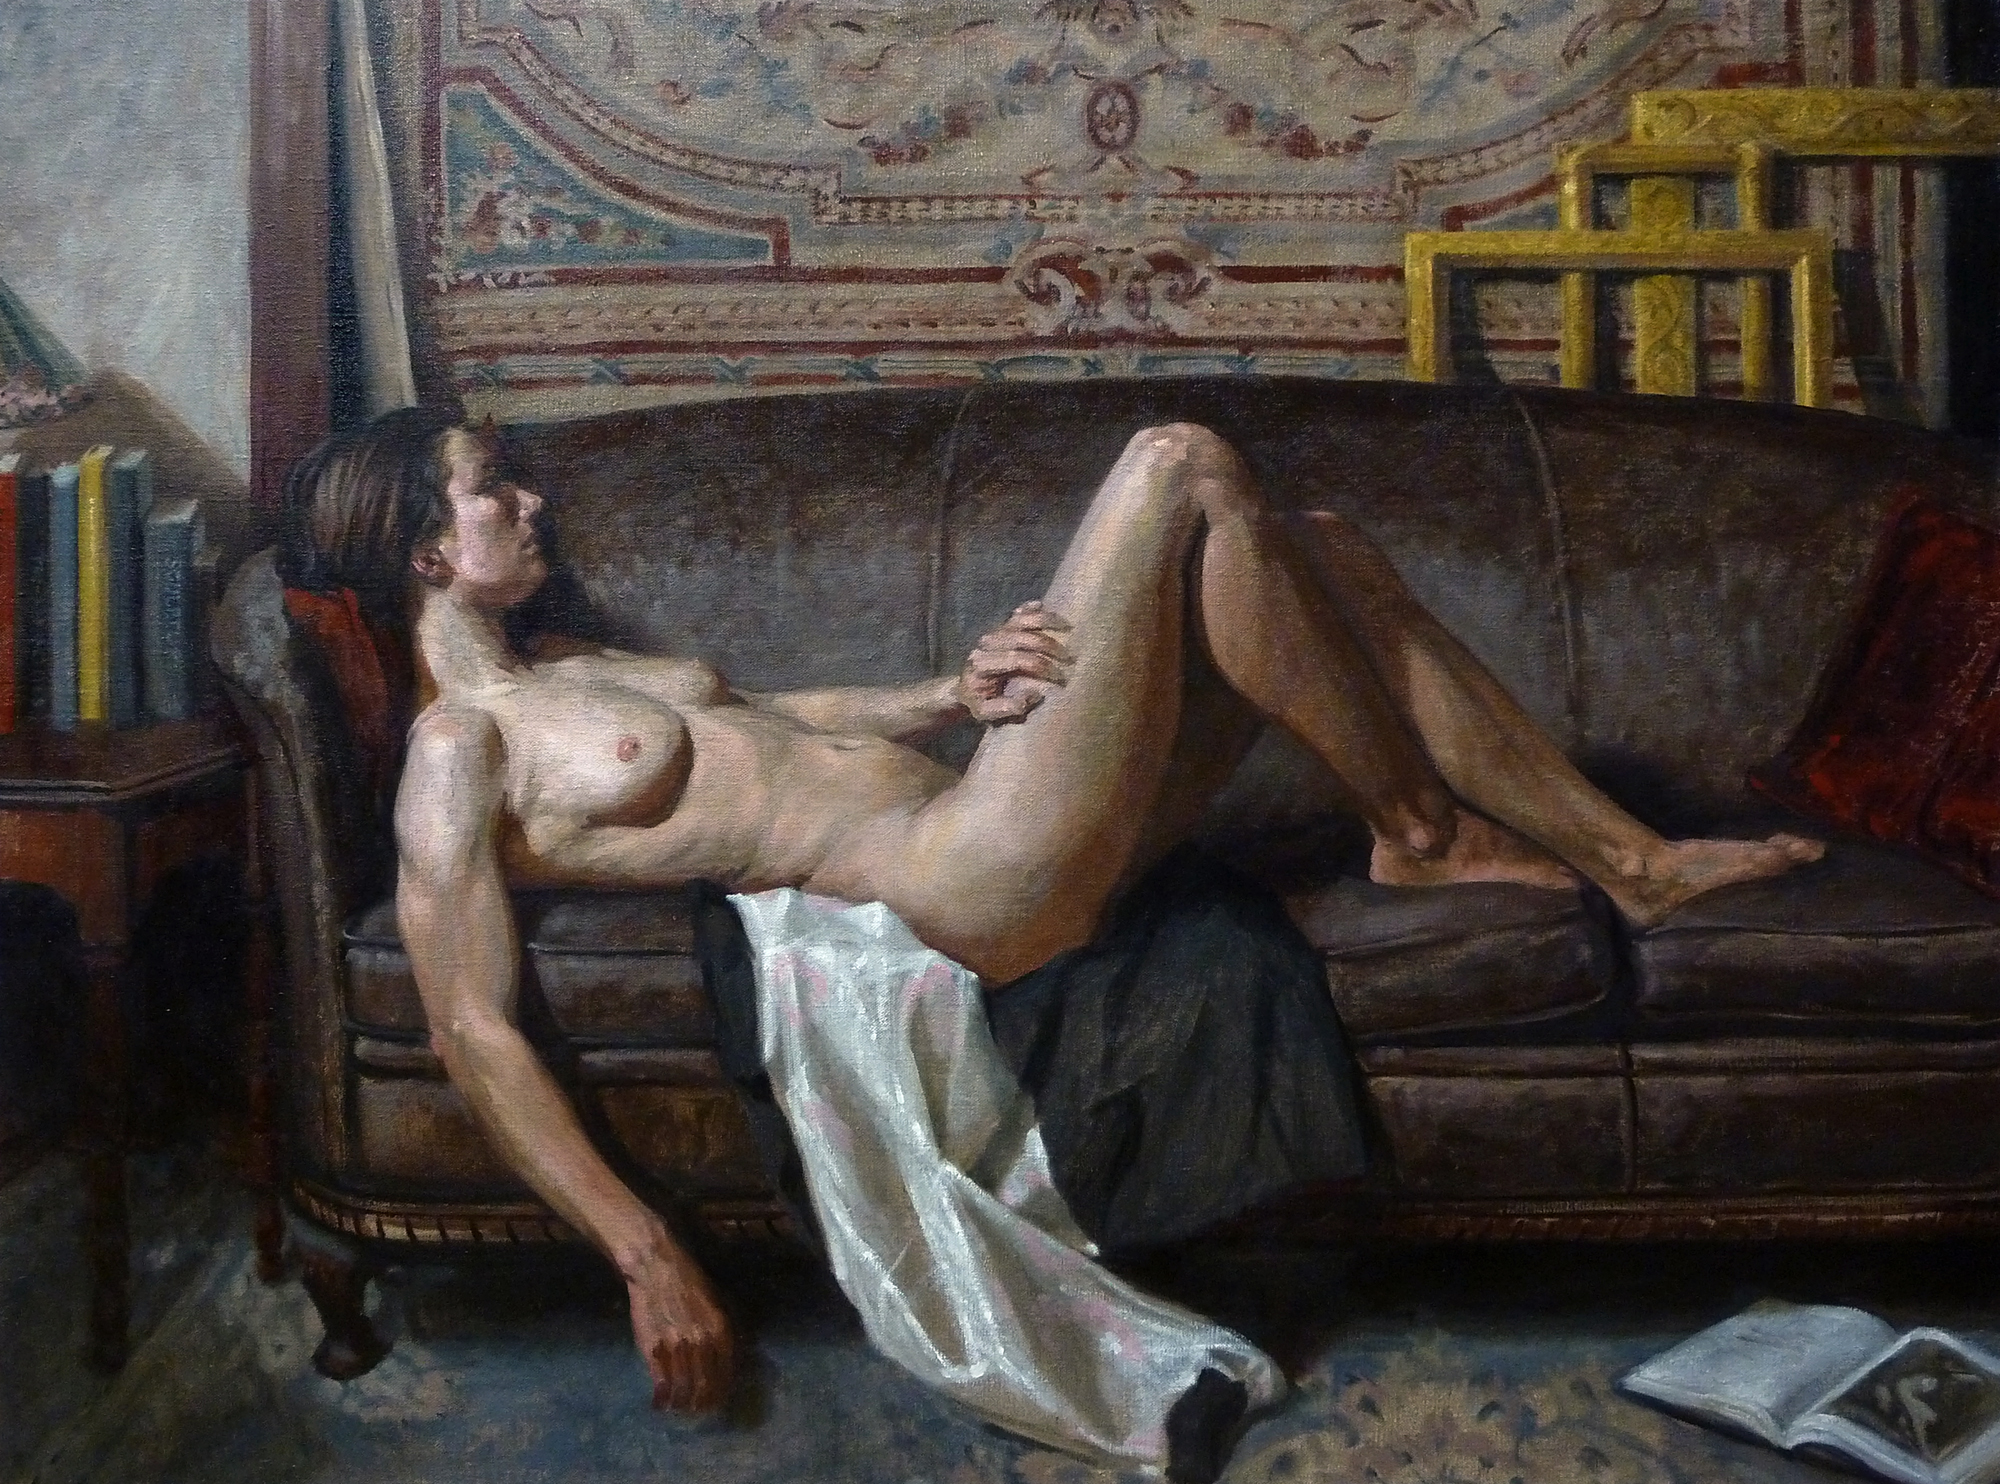 Reclining Female Nude in Studio